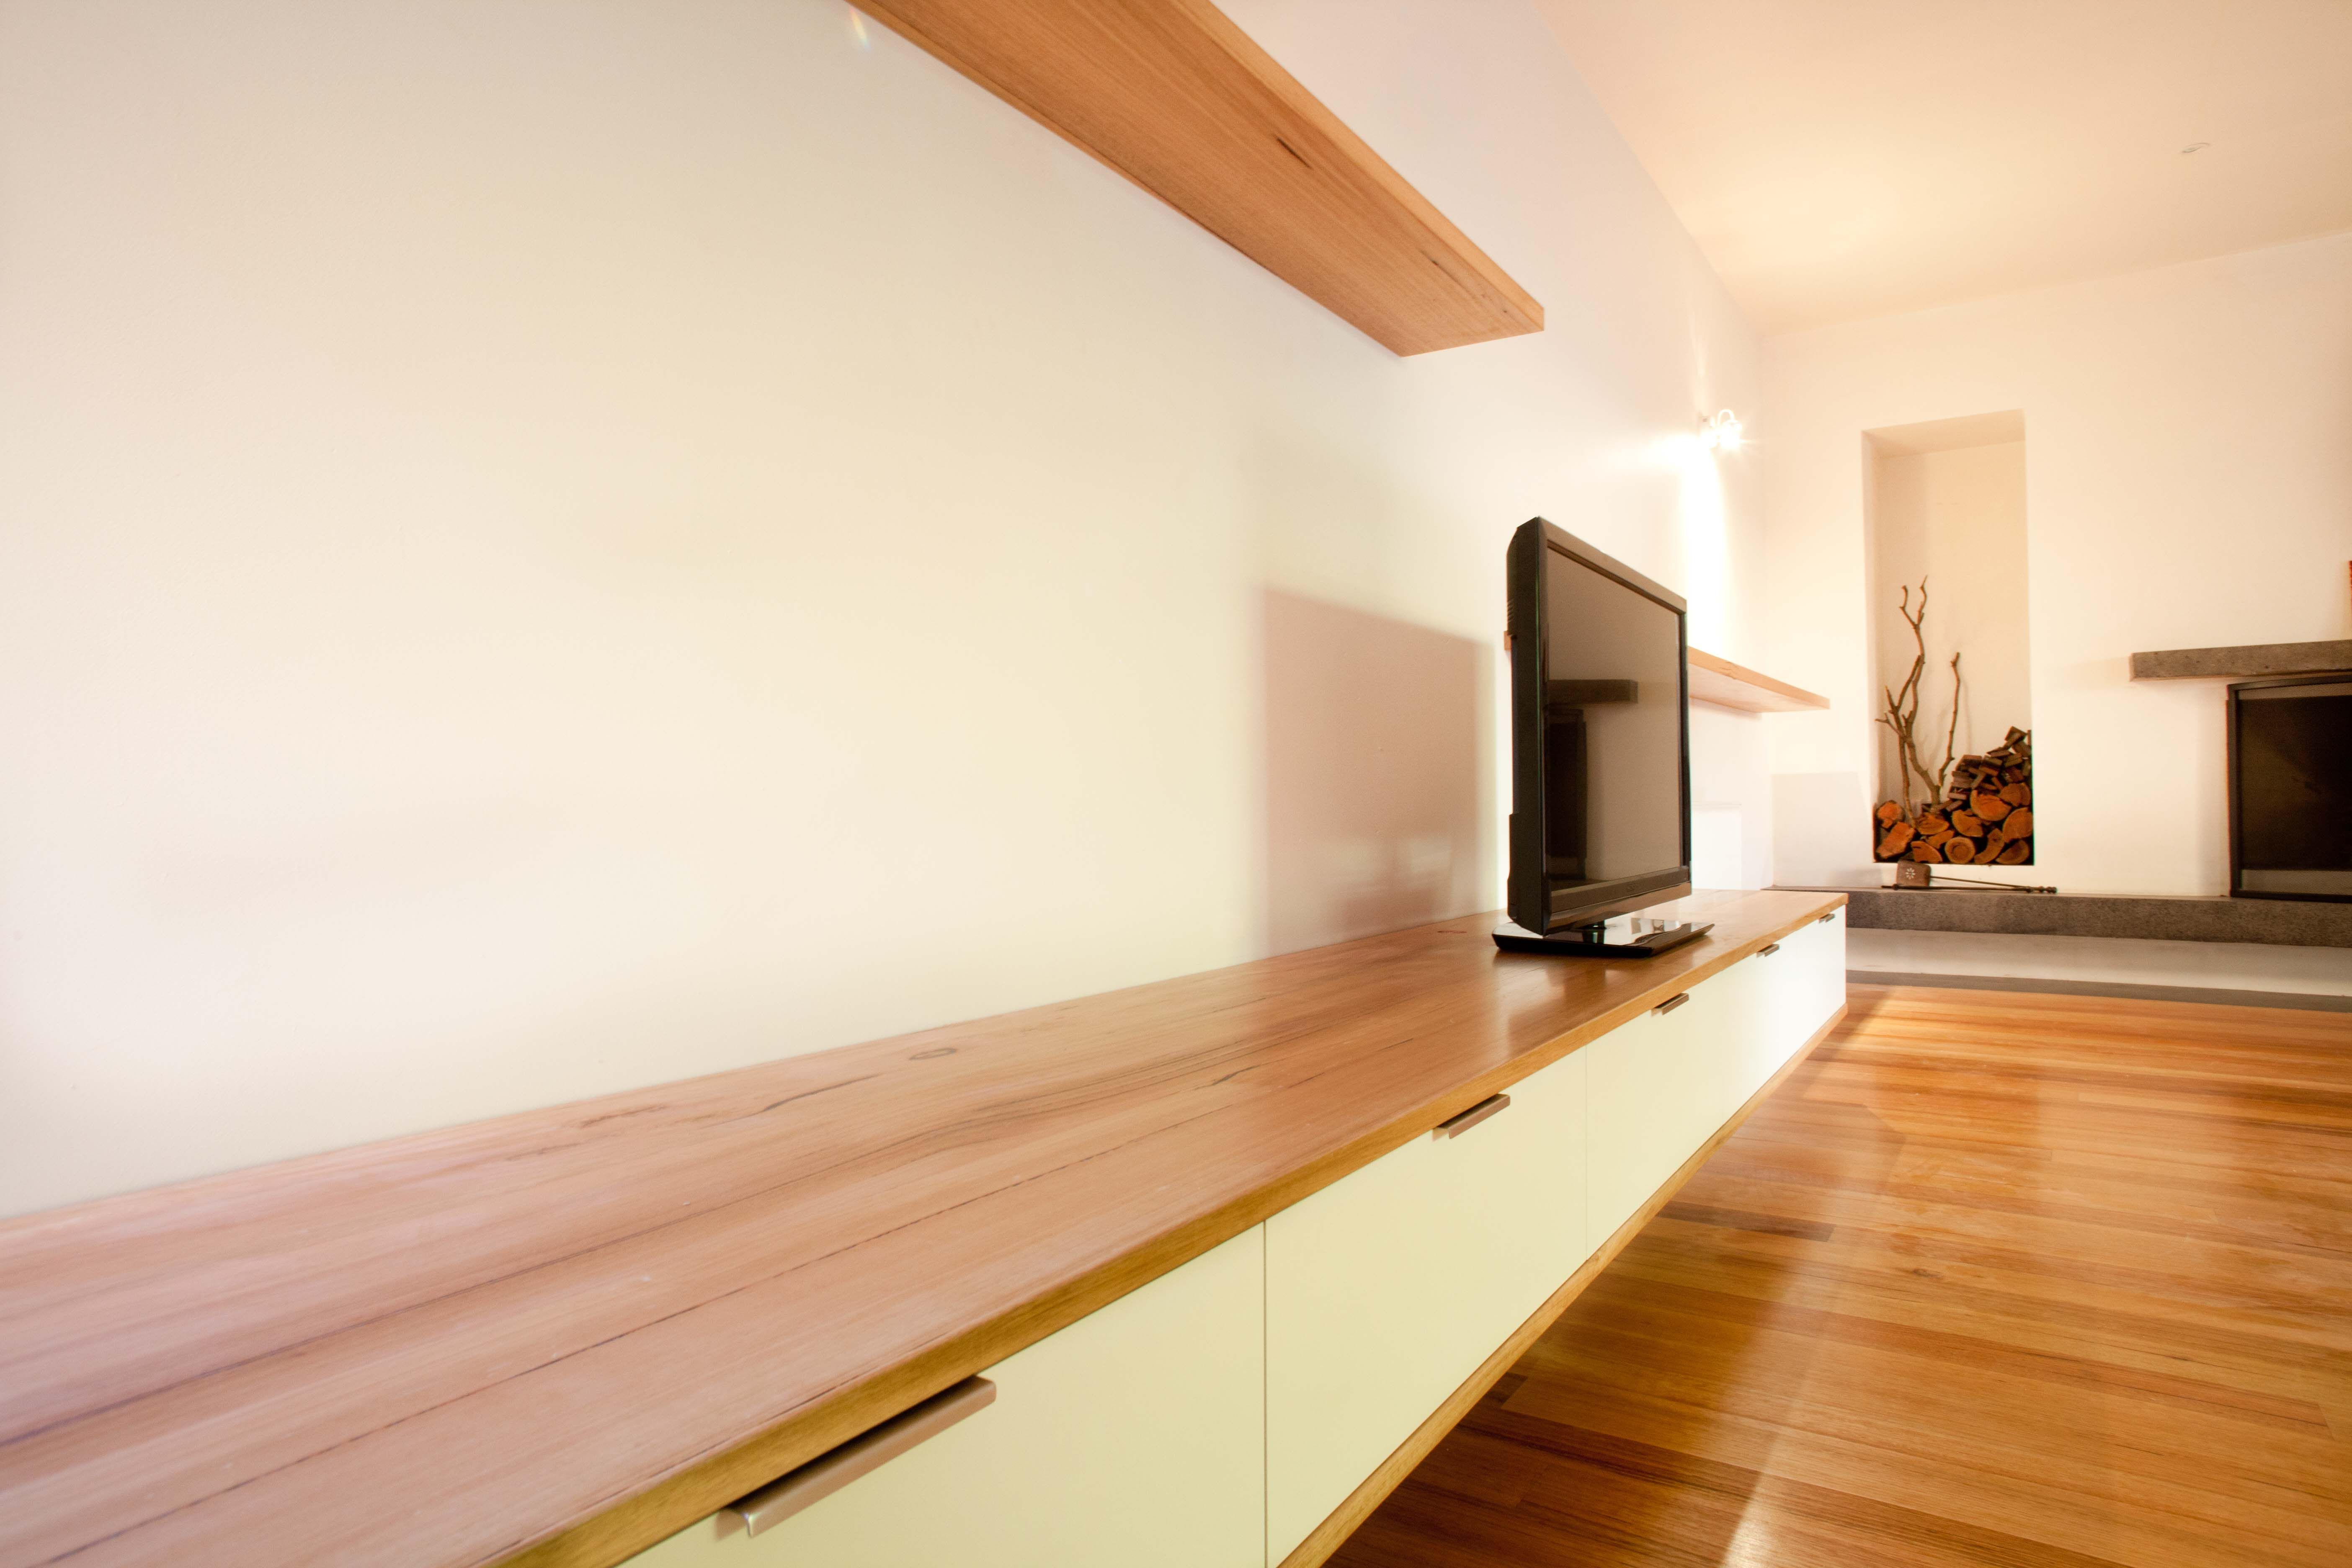 floating tv units | Timber, 2pac, Working with Wood, Amazing Houses ...